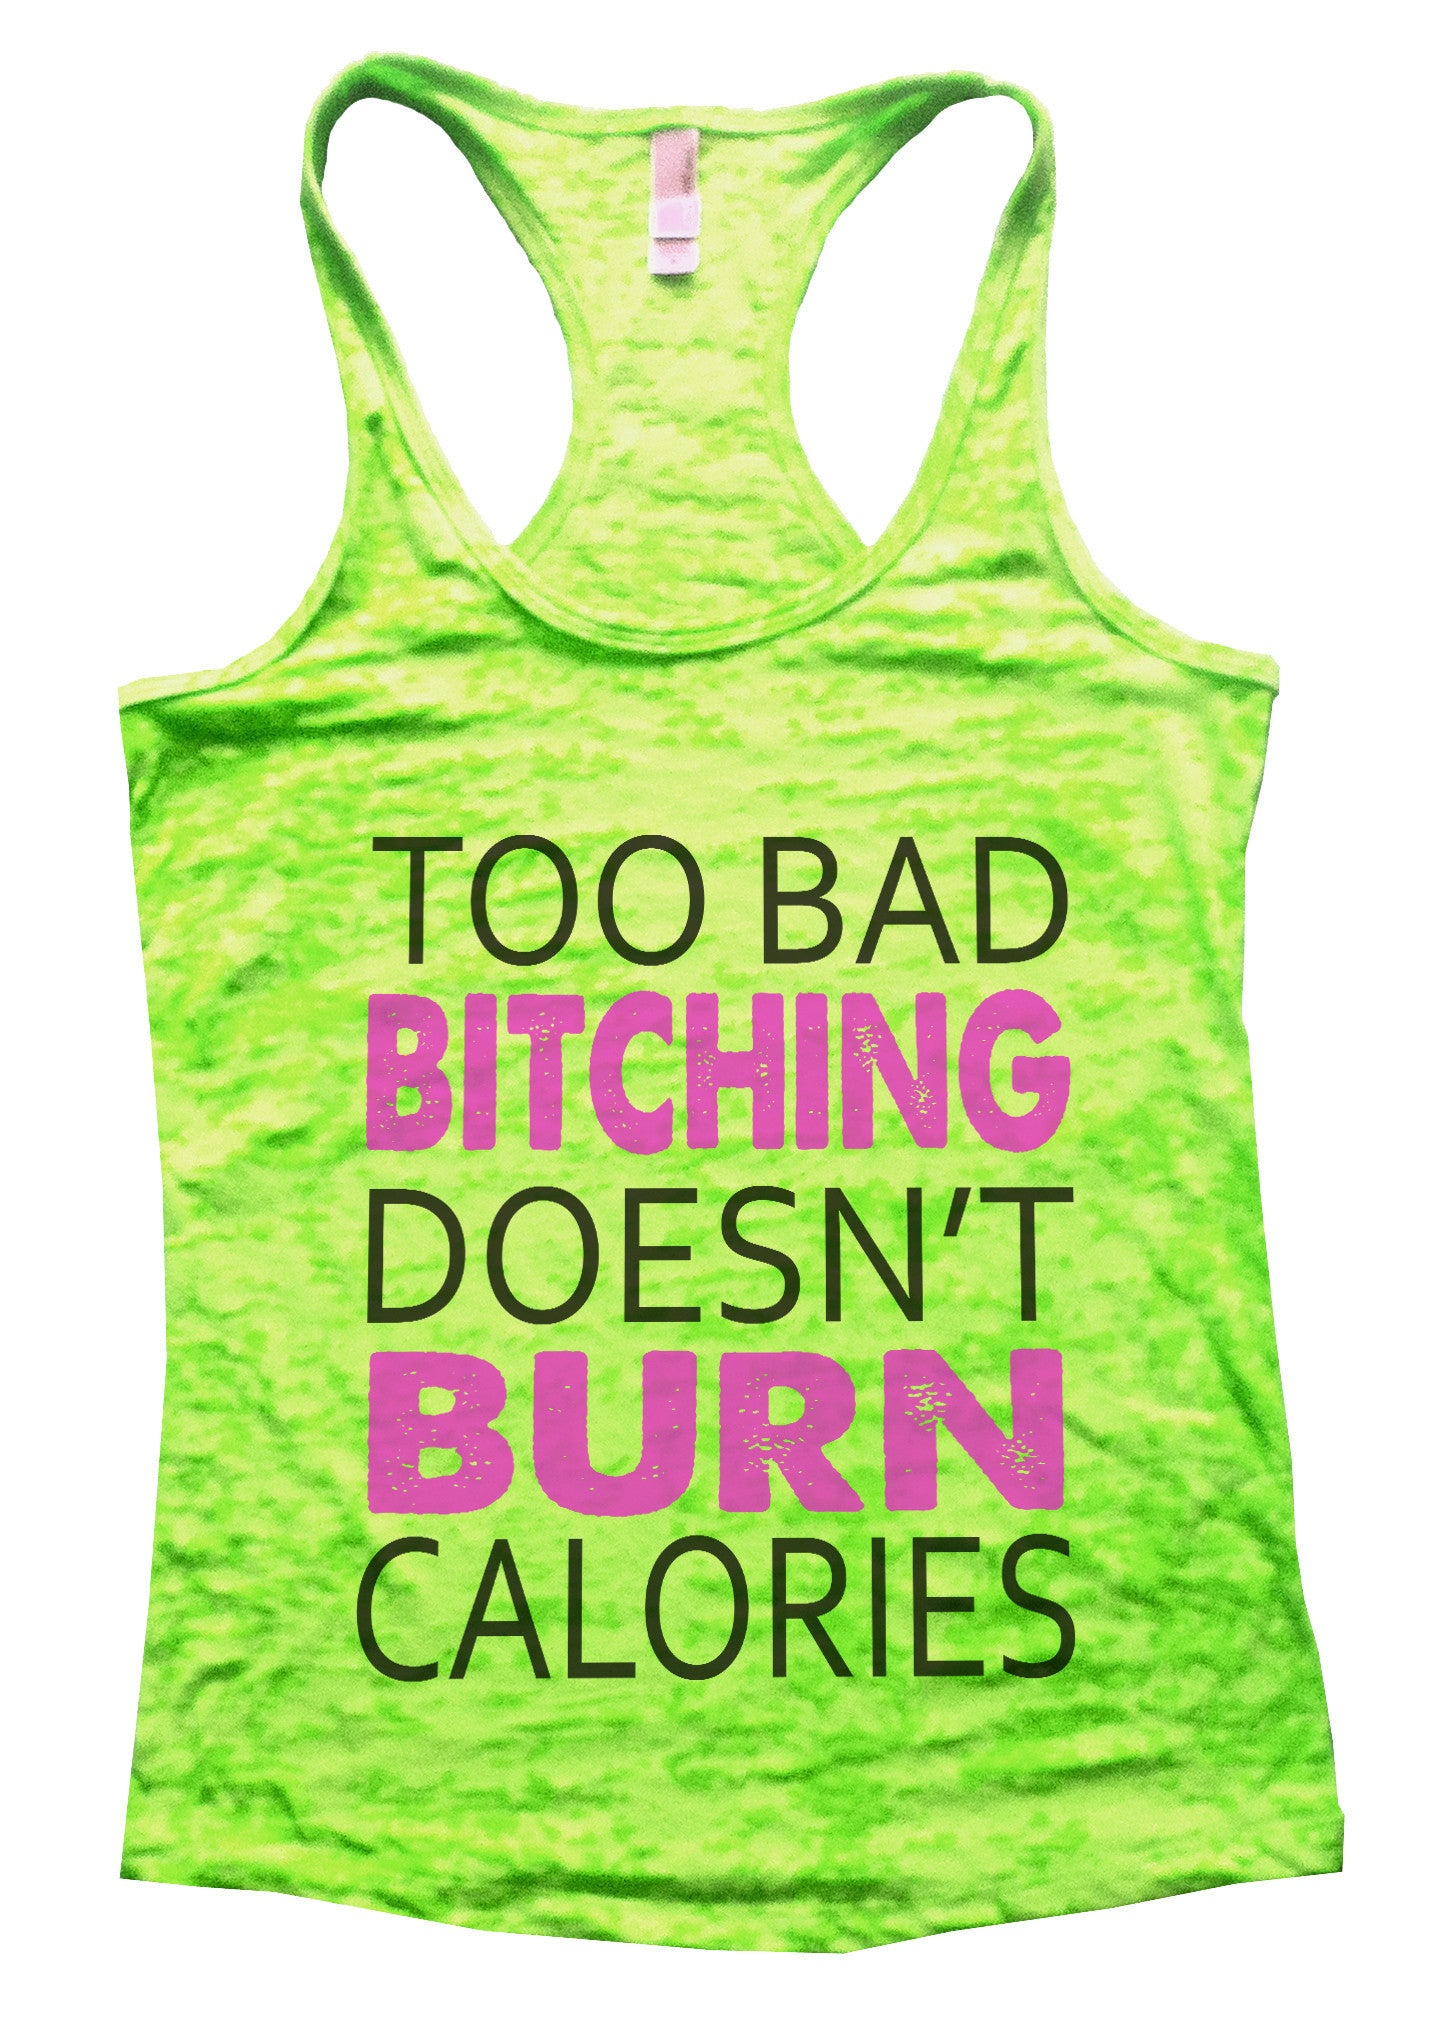 Too Bad Bitching Doesn't Burn Calories Burnout Tank Top By BurnoutTankTops.com - 573 - Funny Shirts Tank Tops Burnouts and Triblends  - 3